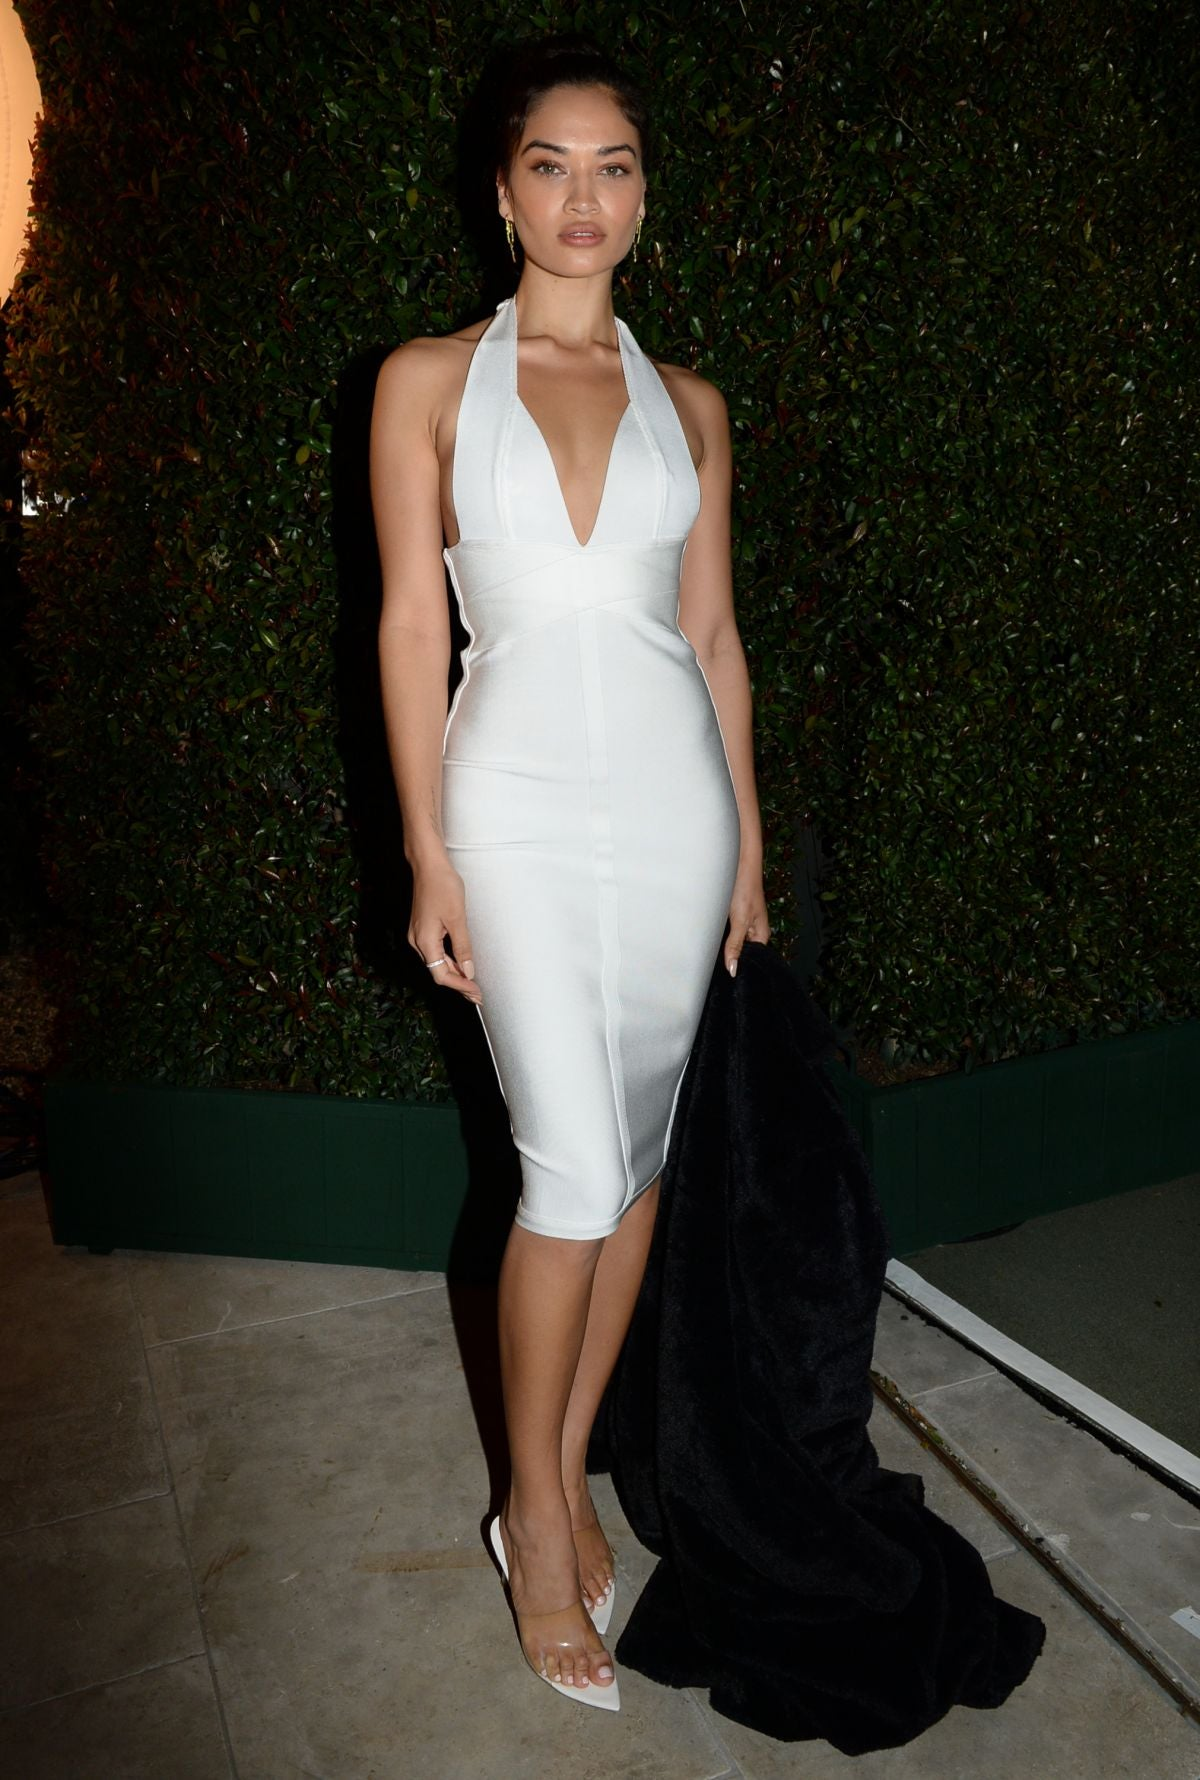 SHANINA SHAIK at WME Pre-oscar Party in Los Angeles